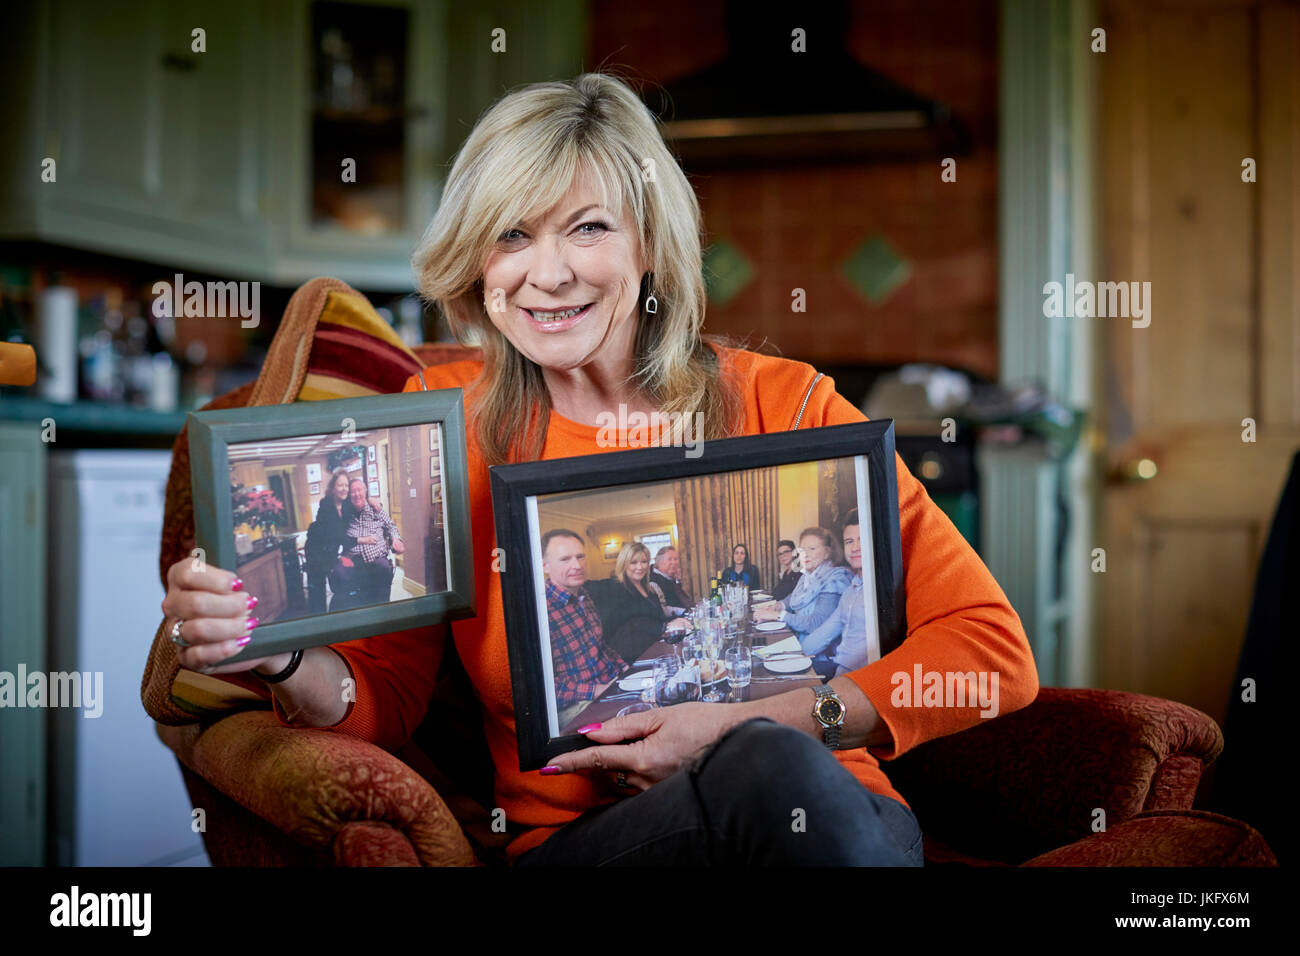 Claire King (born Jayne Claire Seed an English actress. She is best known for playing the role of Kim Tate in the - Stock Image